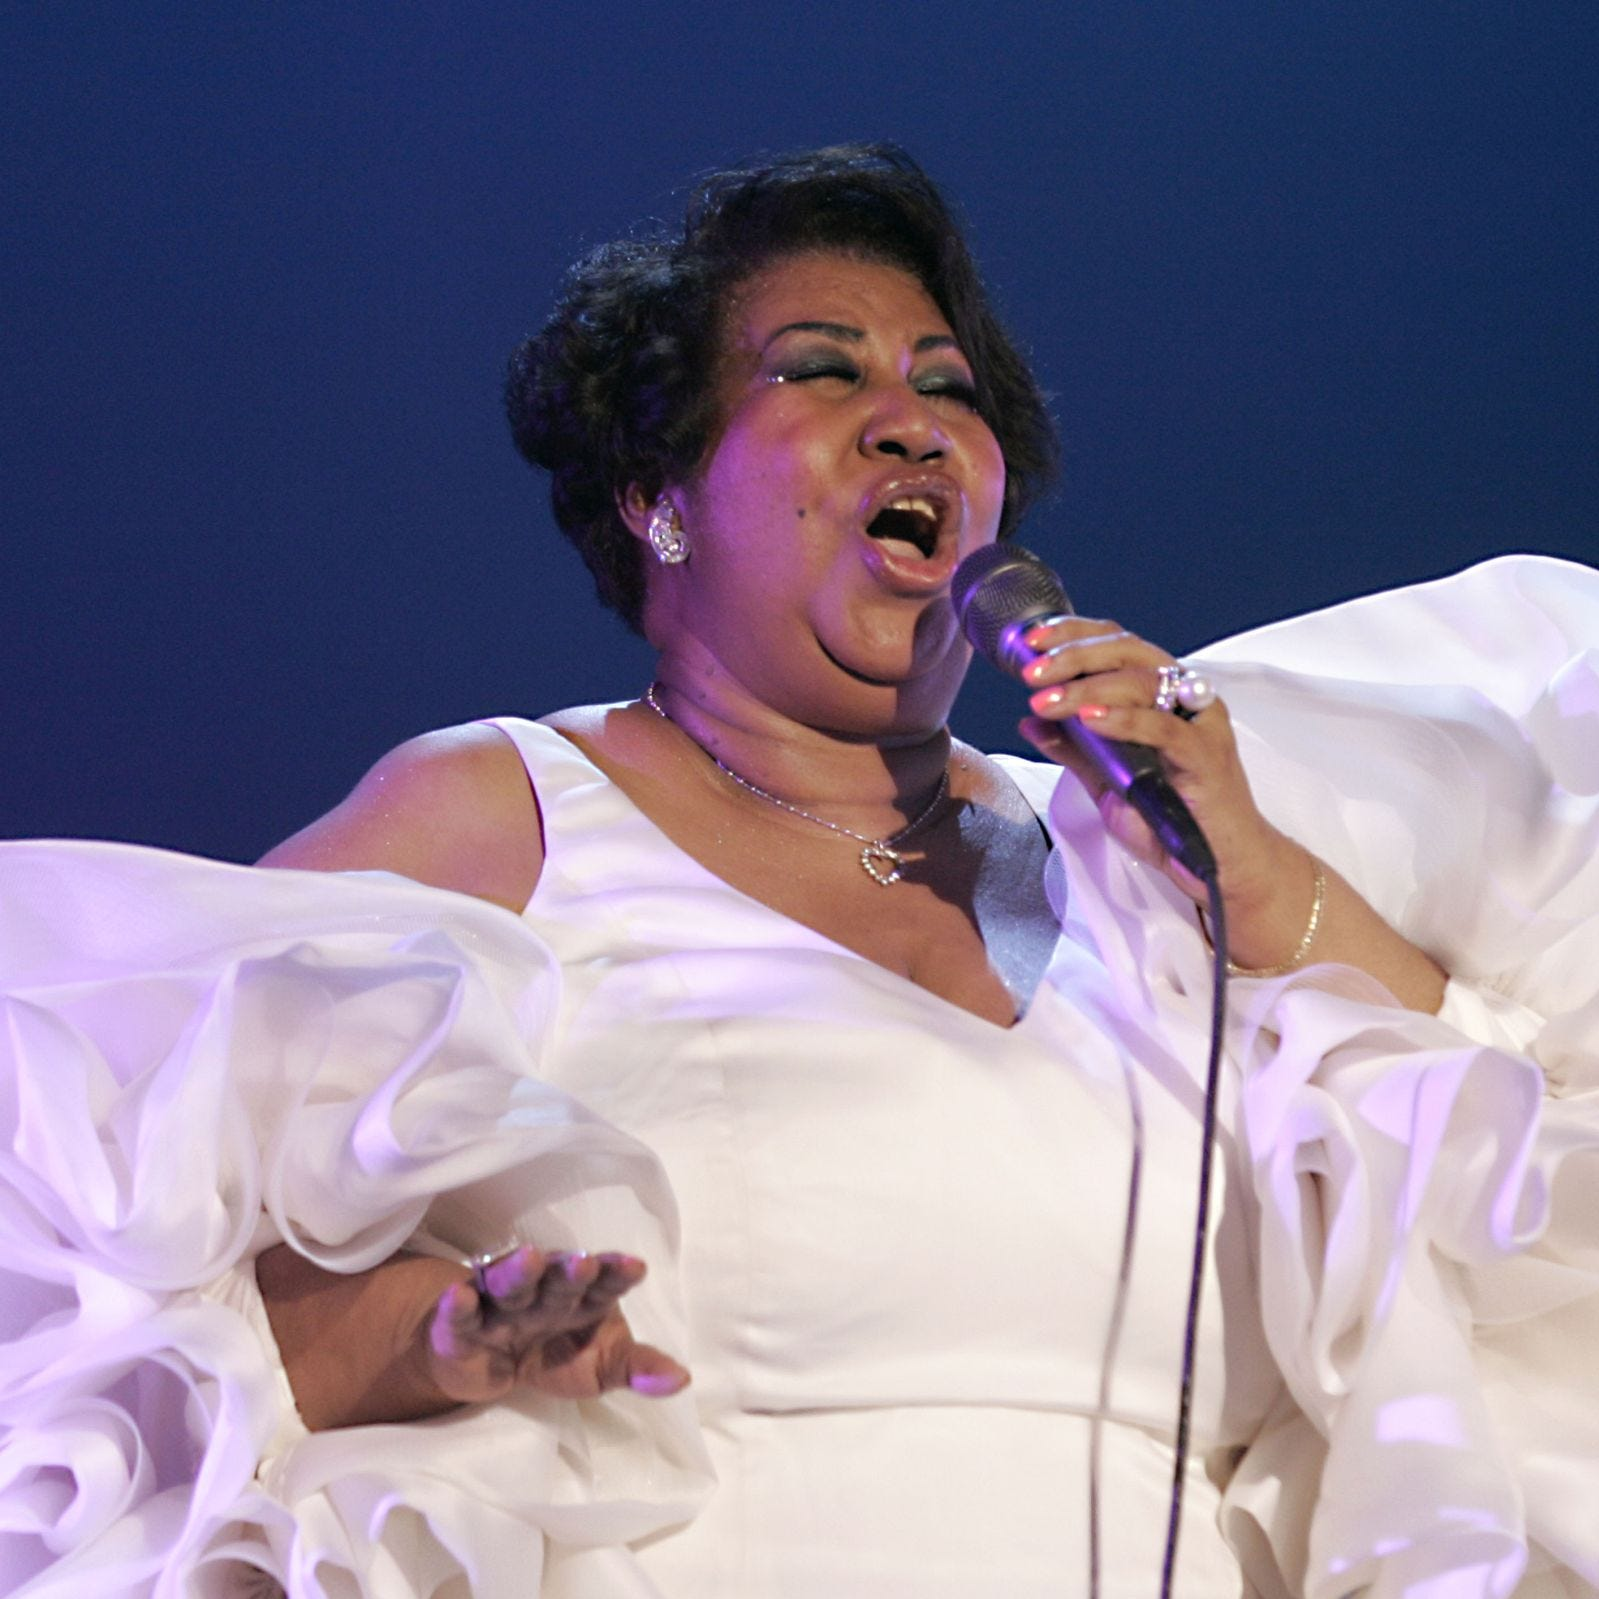 Aretha Franklin dies at 76: Paved the way for feminist pop divas like Beyoncé, Katy Perry